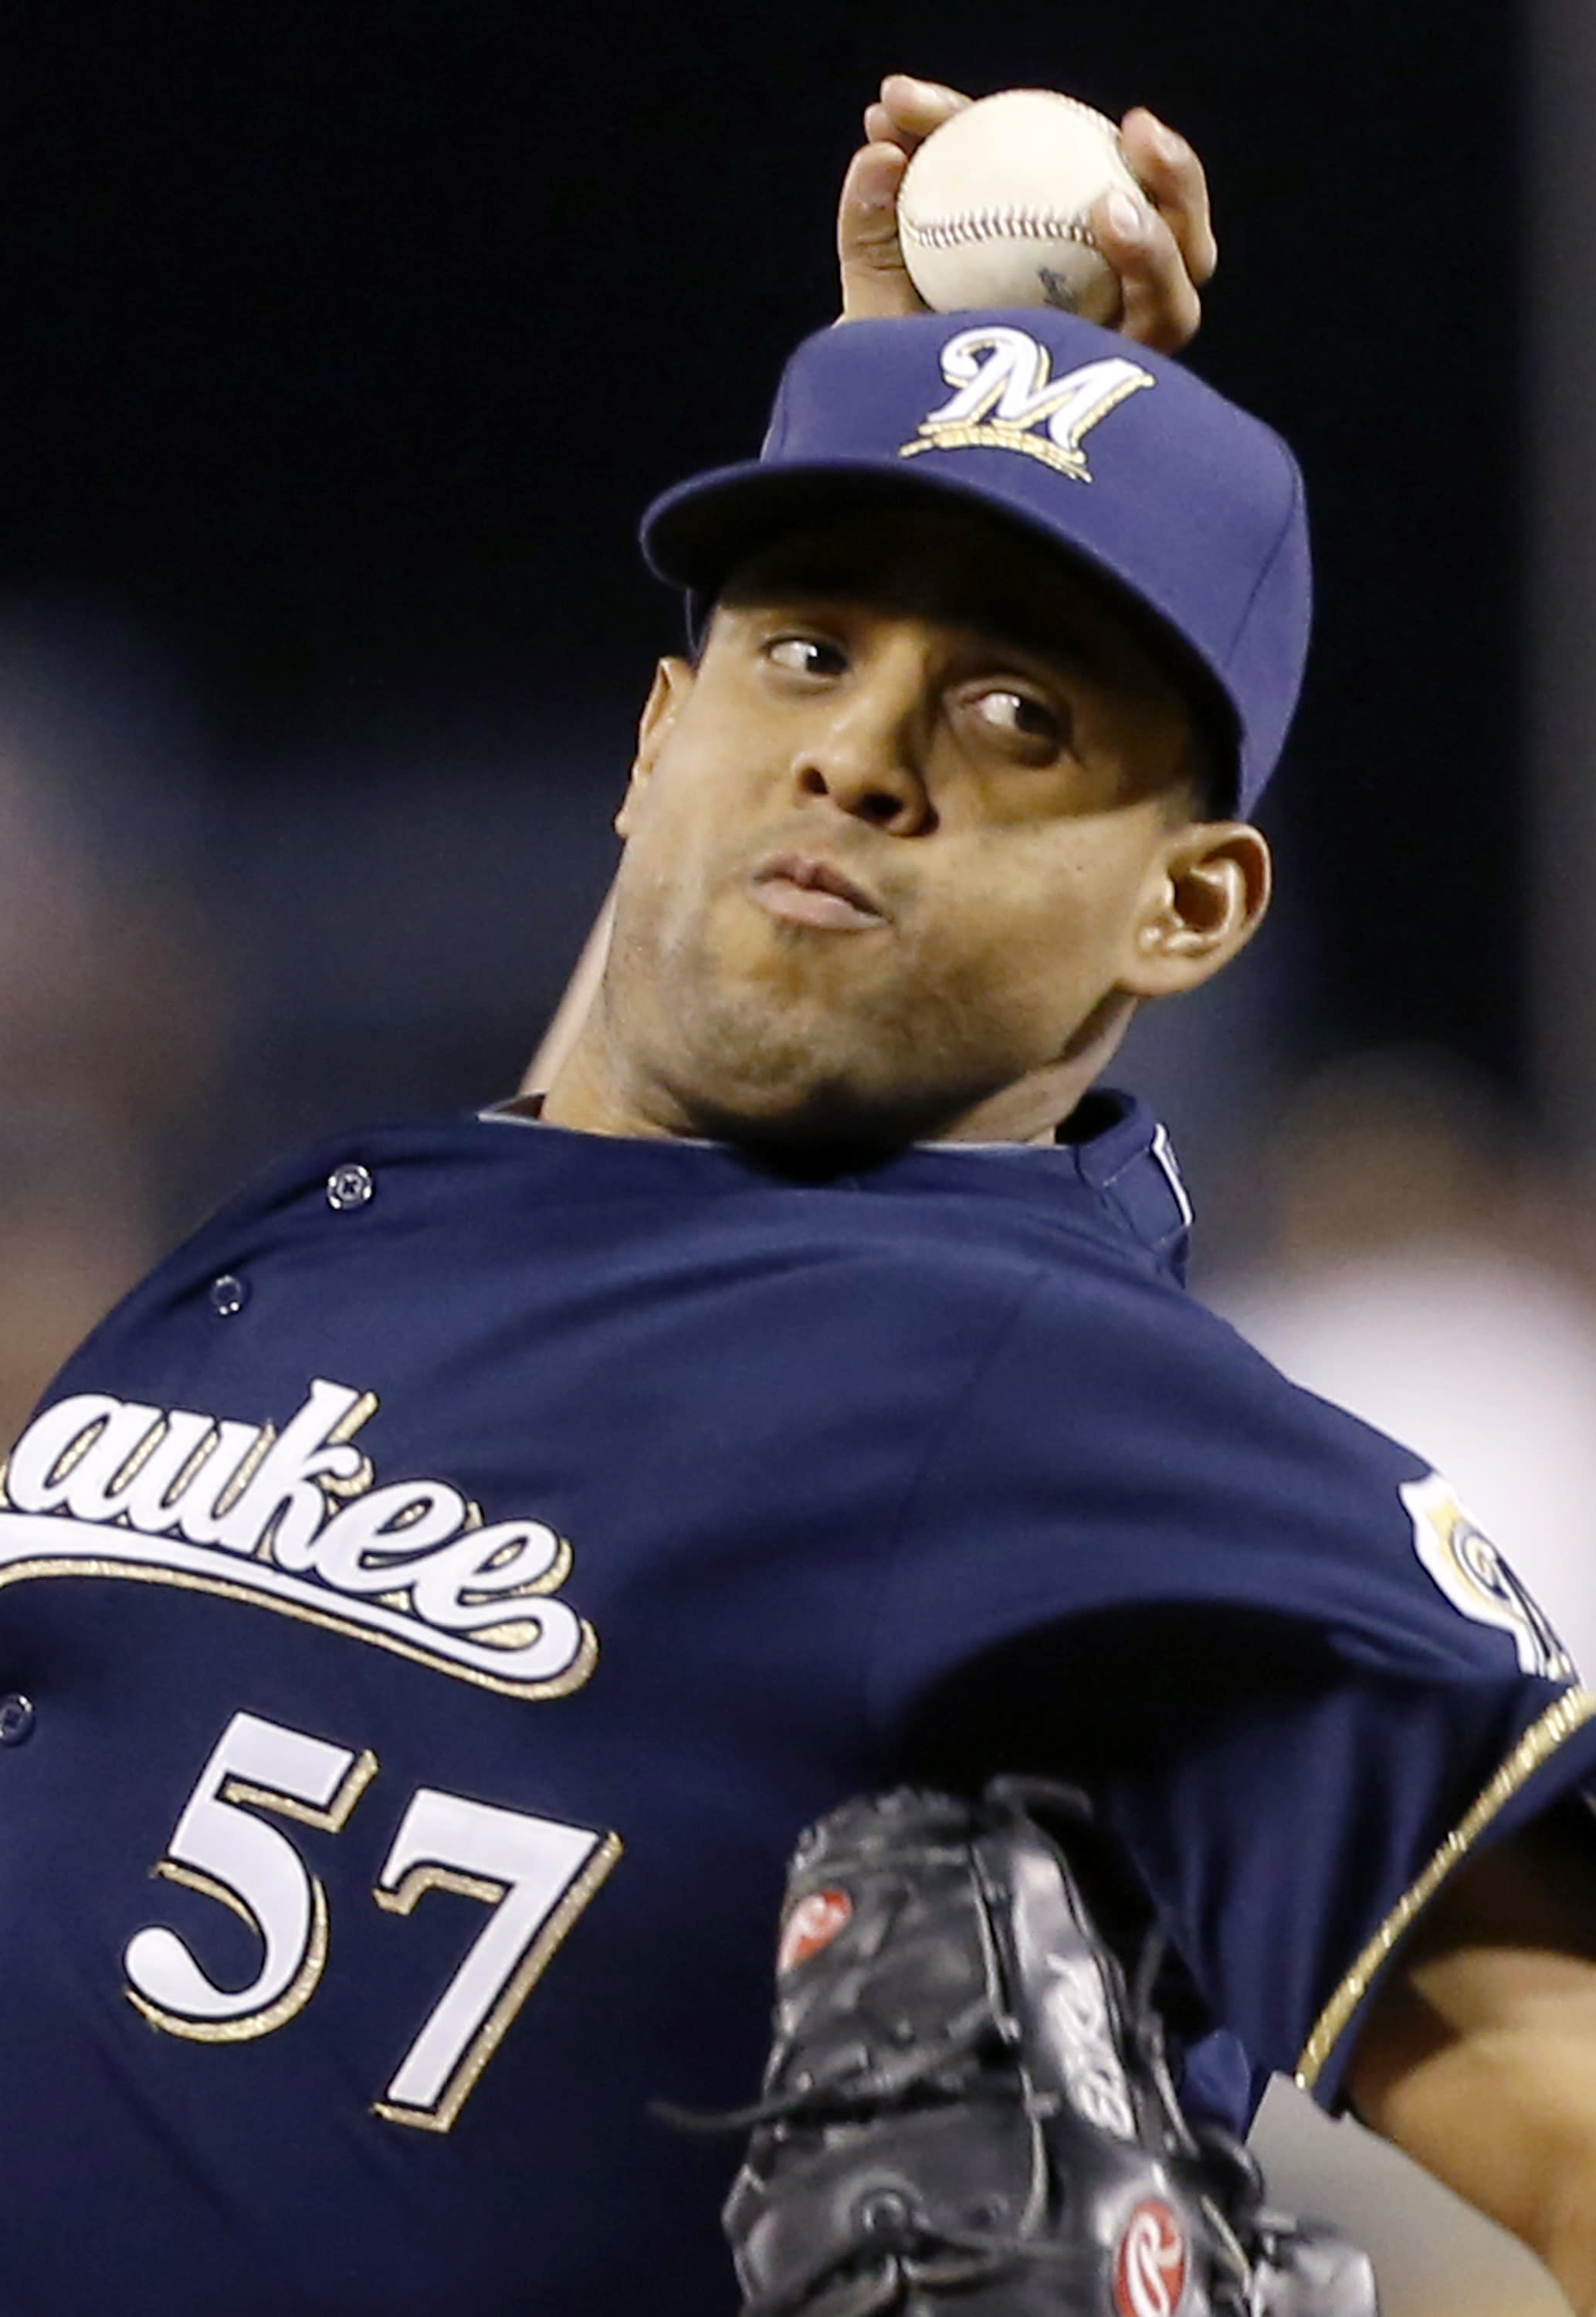 AP source: K-Rod, Brewers agree to $13M, 2-year deal